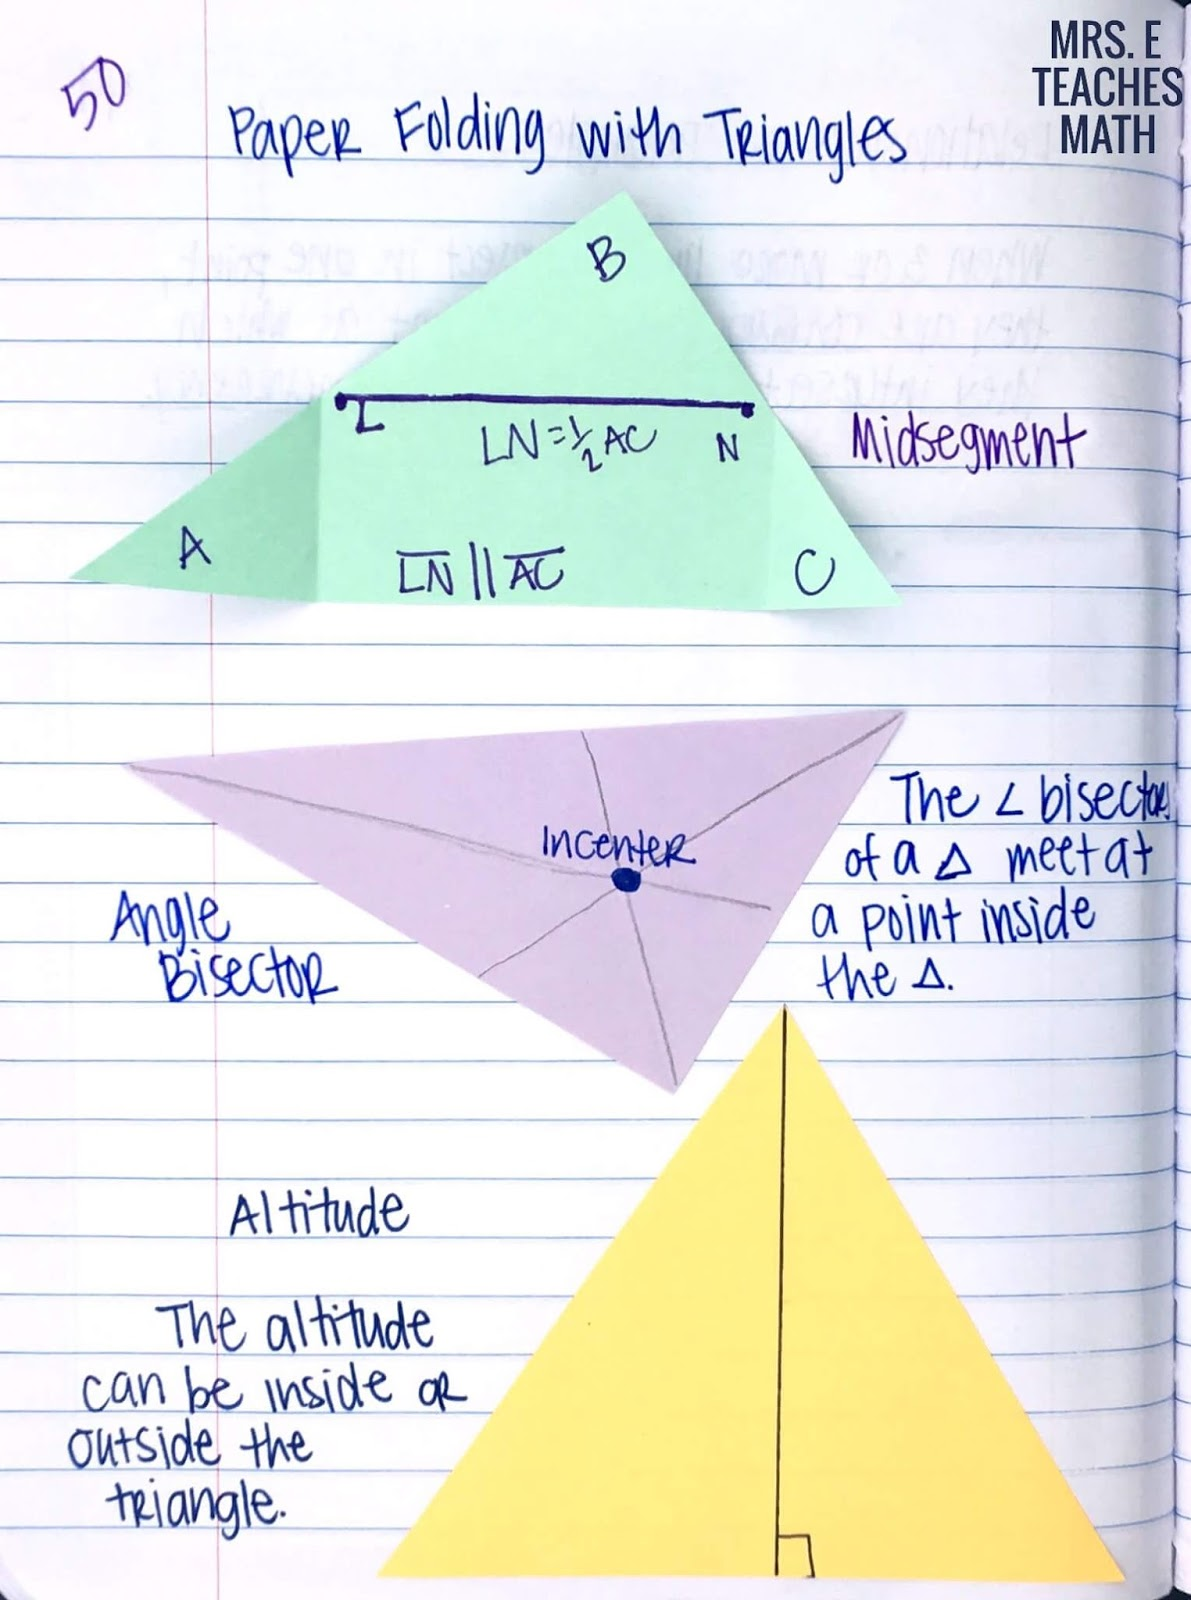 Relationships In Triangles Inb Pages Mrs E Teaches Math